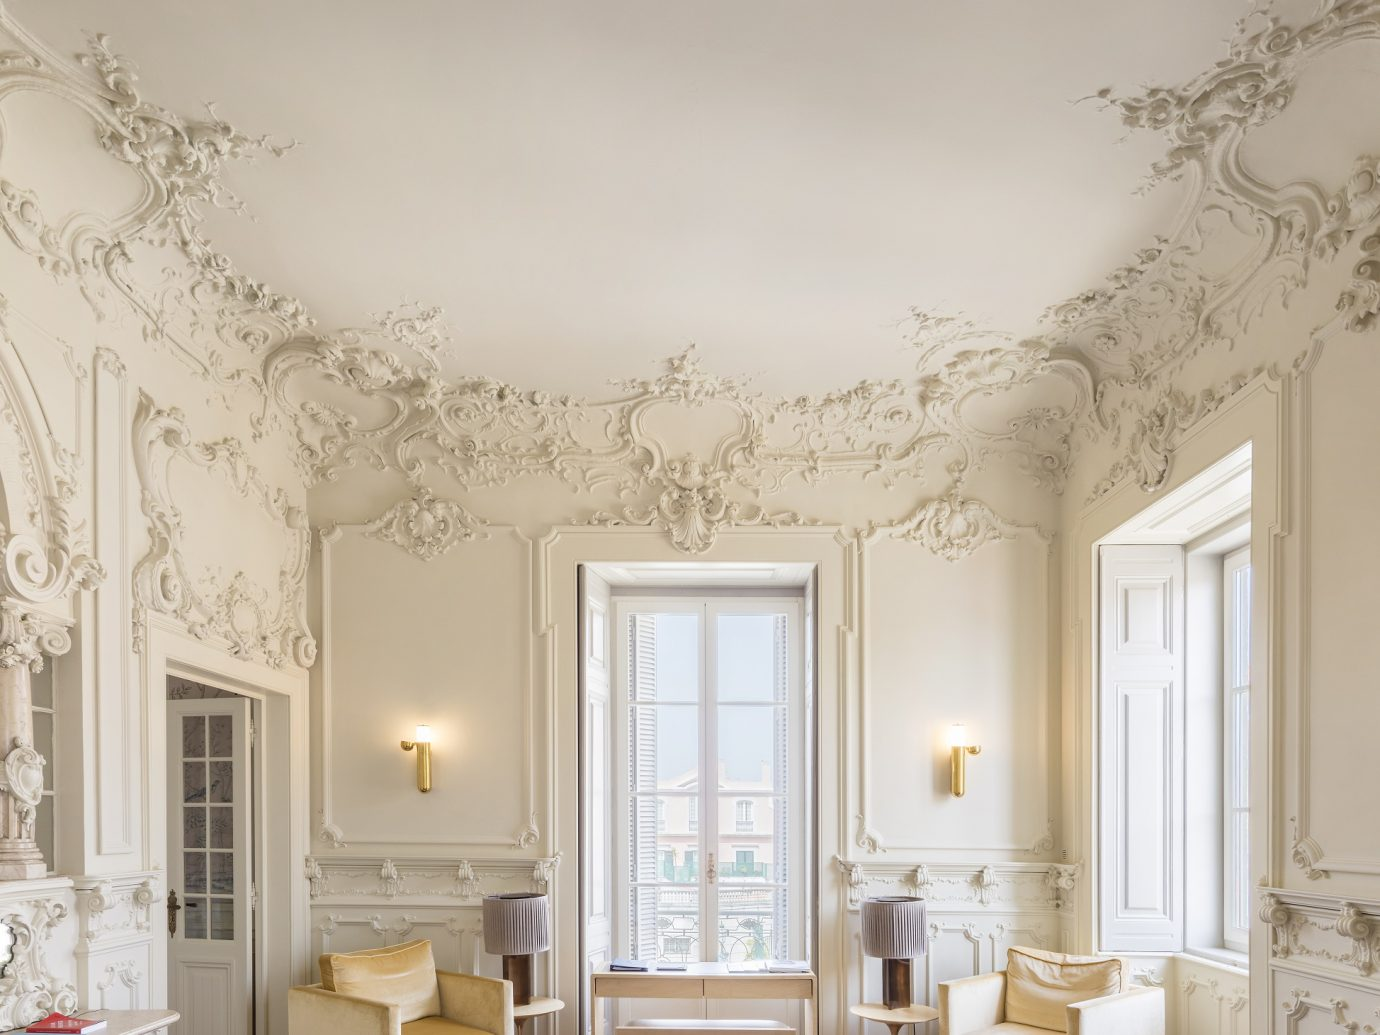 Luxurious white room with wall accents at Verride Palácio Santa Catarina